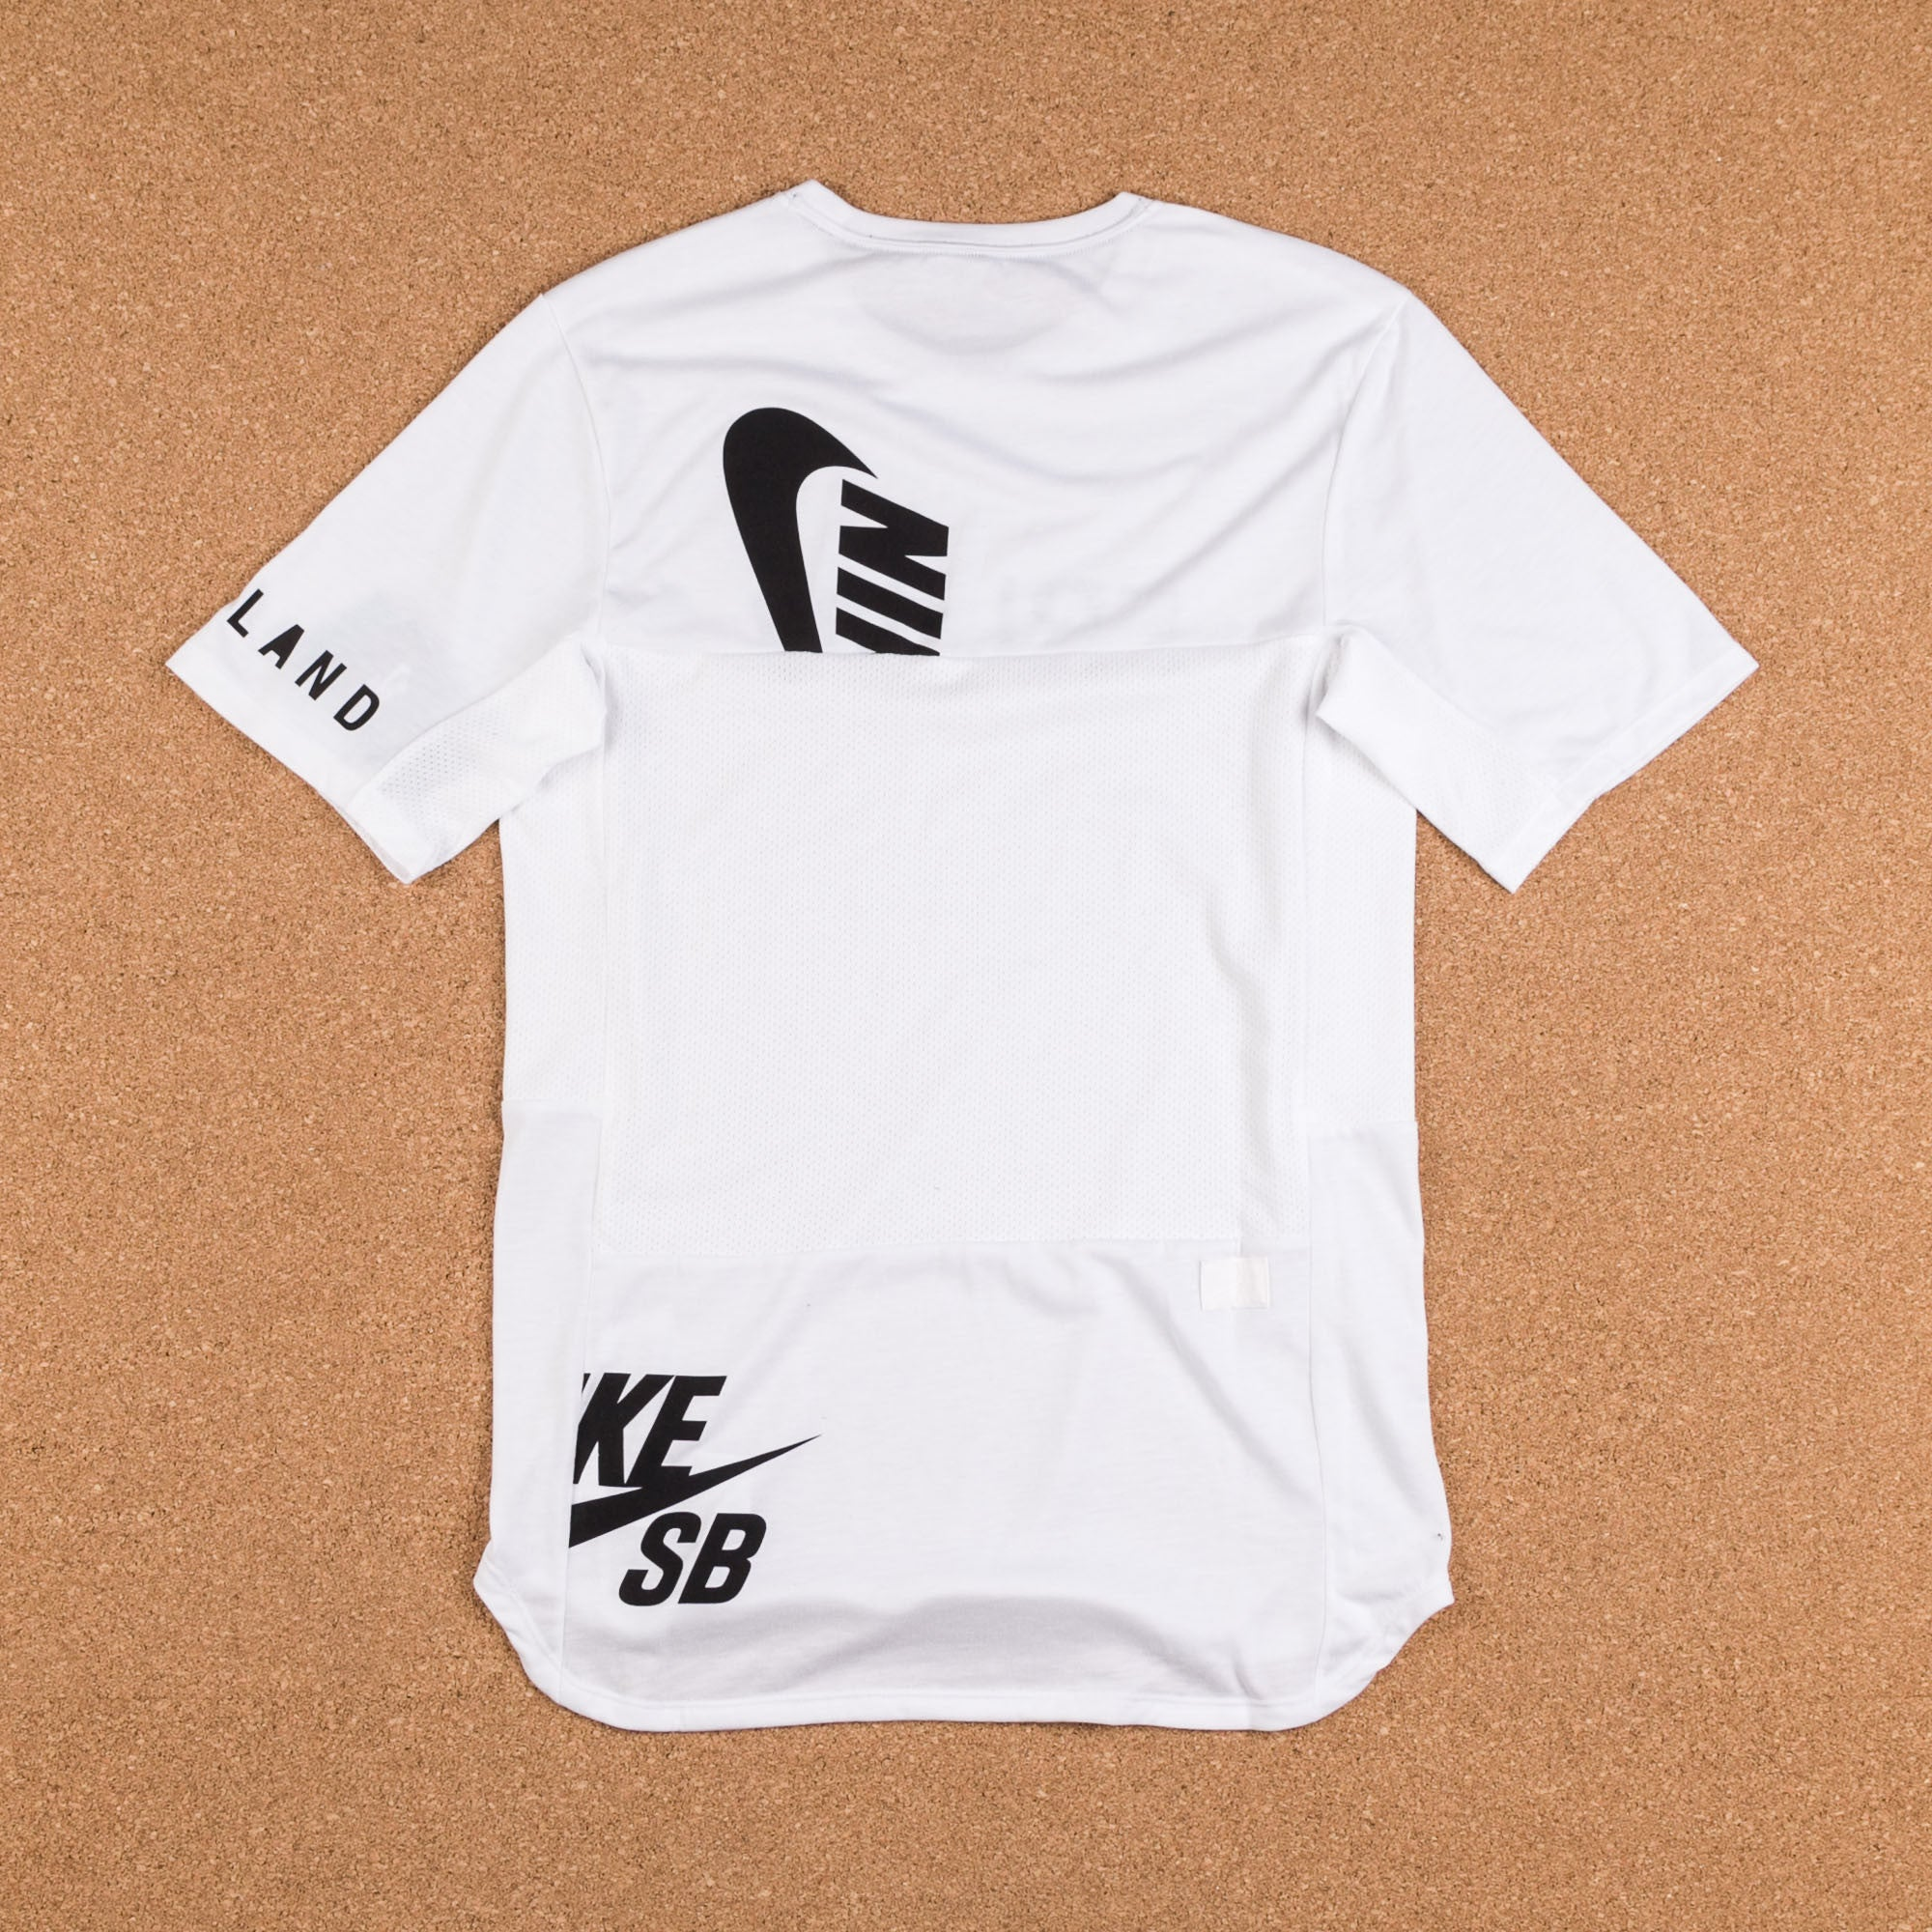 Nike SB x Soulland Dry Skyline T-Shirt - White / Black